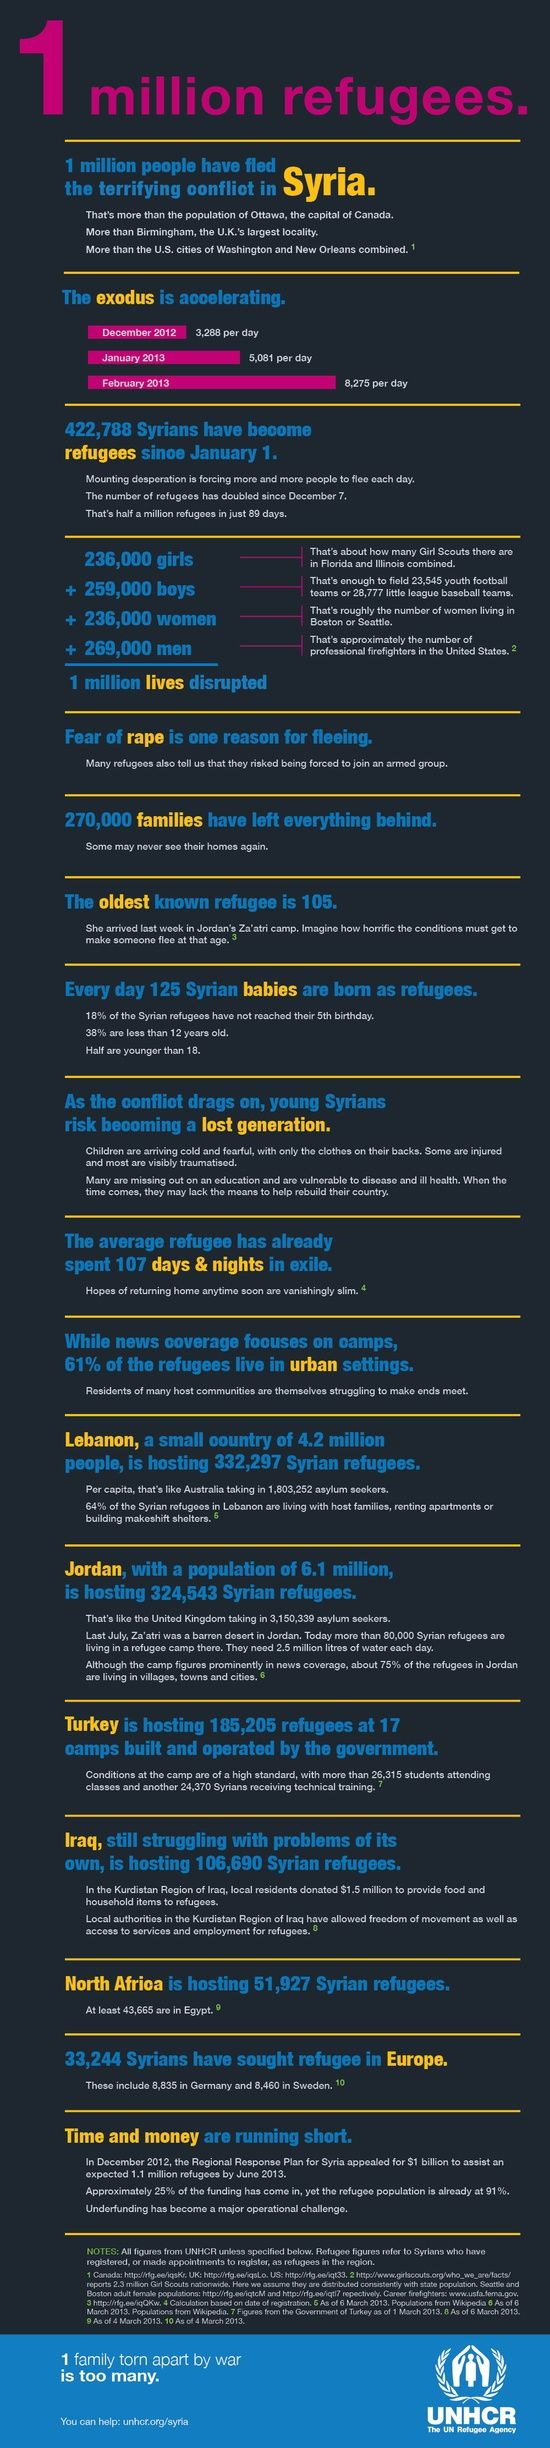 "From ""A Syria refugee infographic goes semi-viral"" story by Chris Reardon on Storify — http://storify.com/scoop_reardon/a-syria-refugee-infographic-goes-semi-viral"